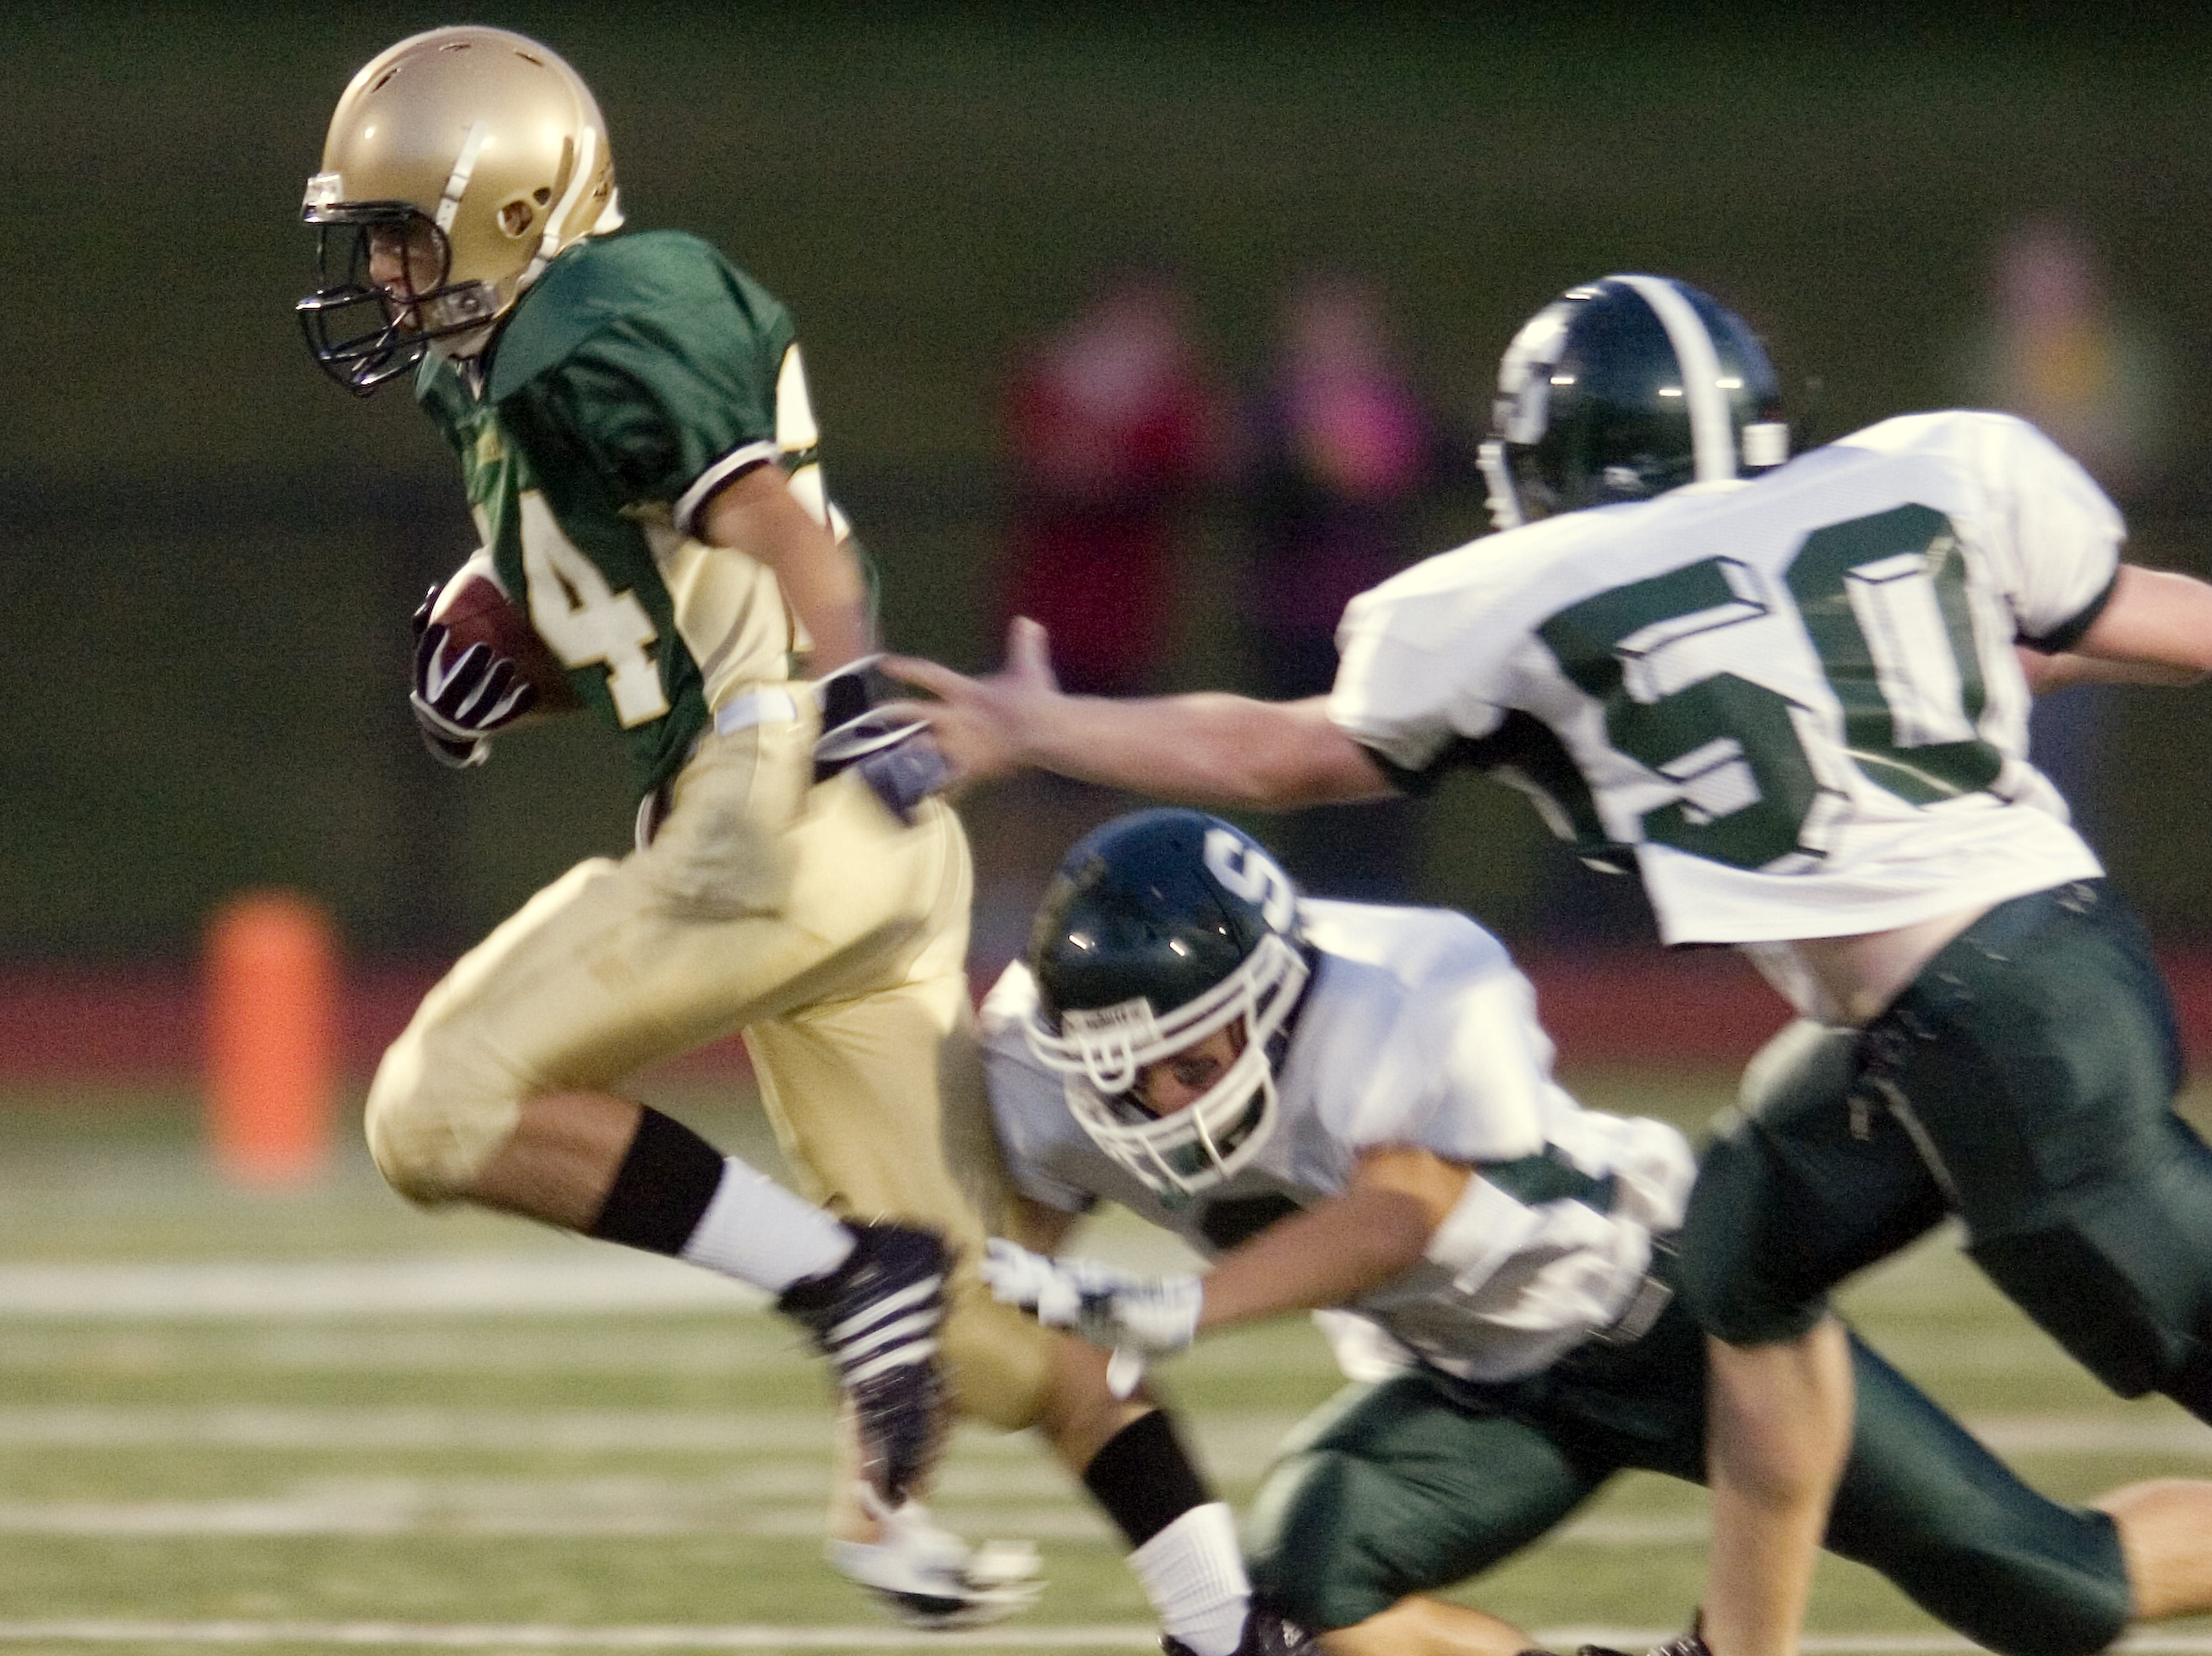 In 2008, Vestal's Tim Vieira, left, returns a kickoff in the second quarter of the  season-opener against Elmira South Side at Dick Hoover Stadium.